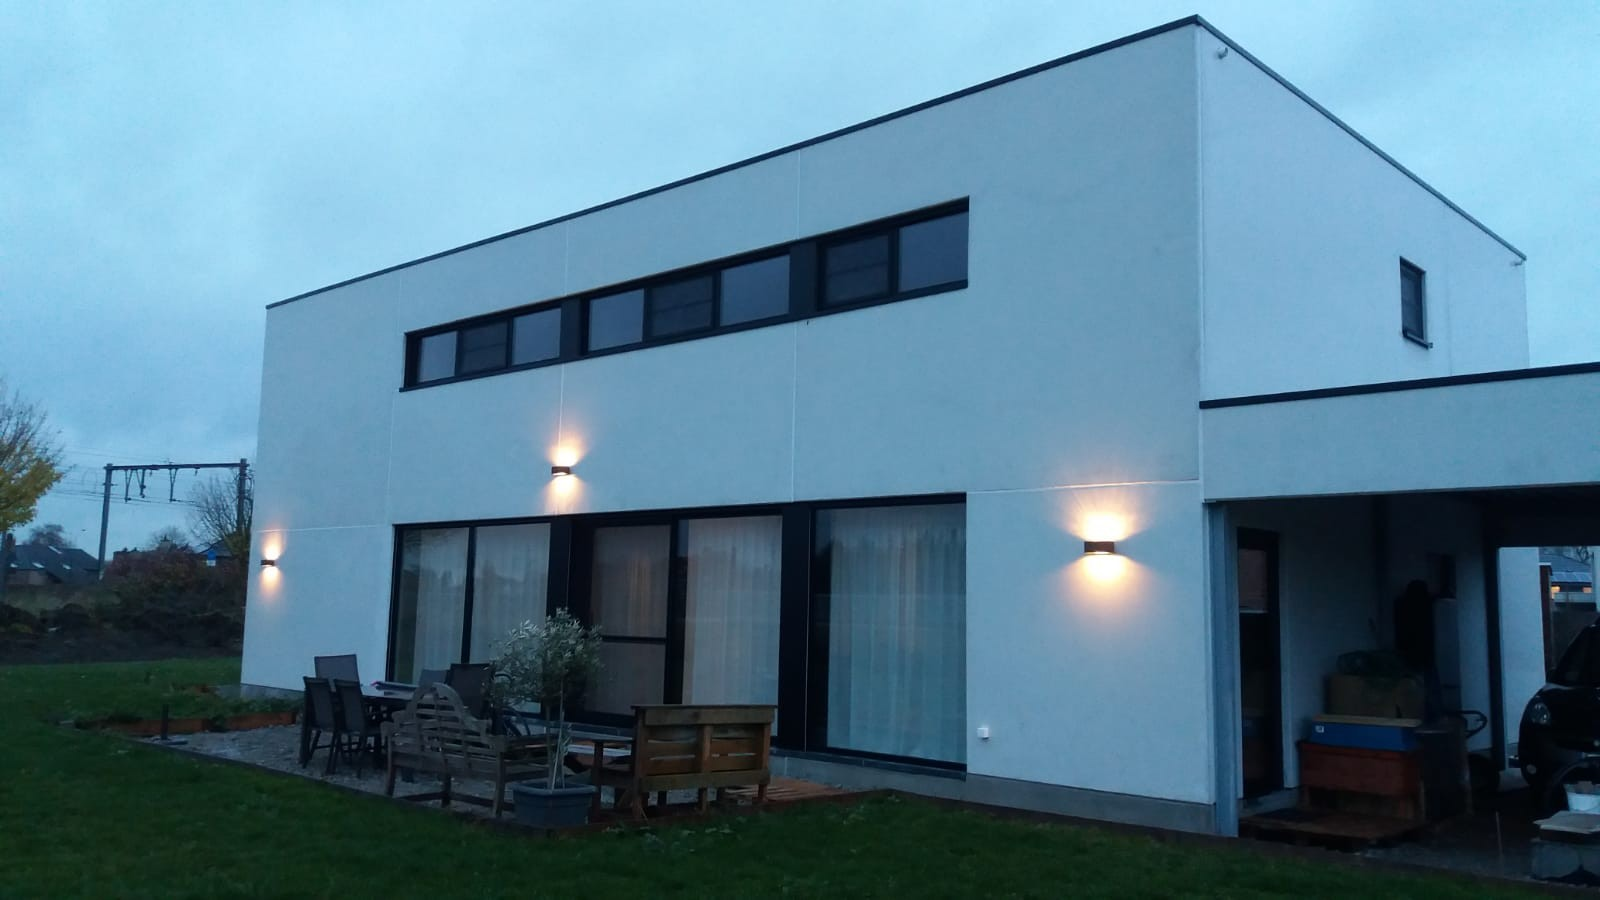 House with white concrete panels